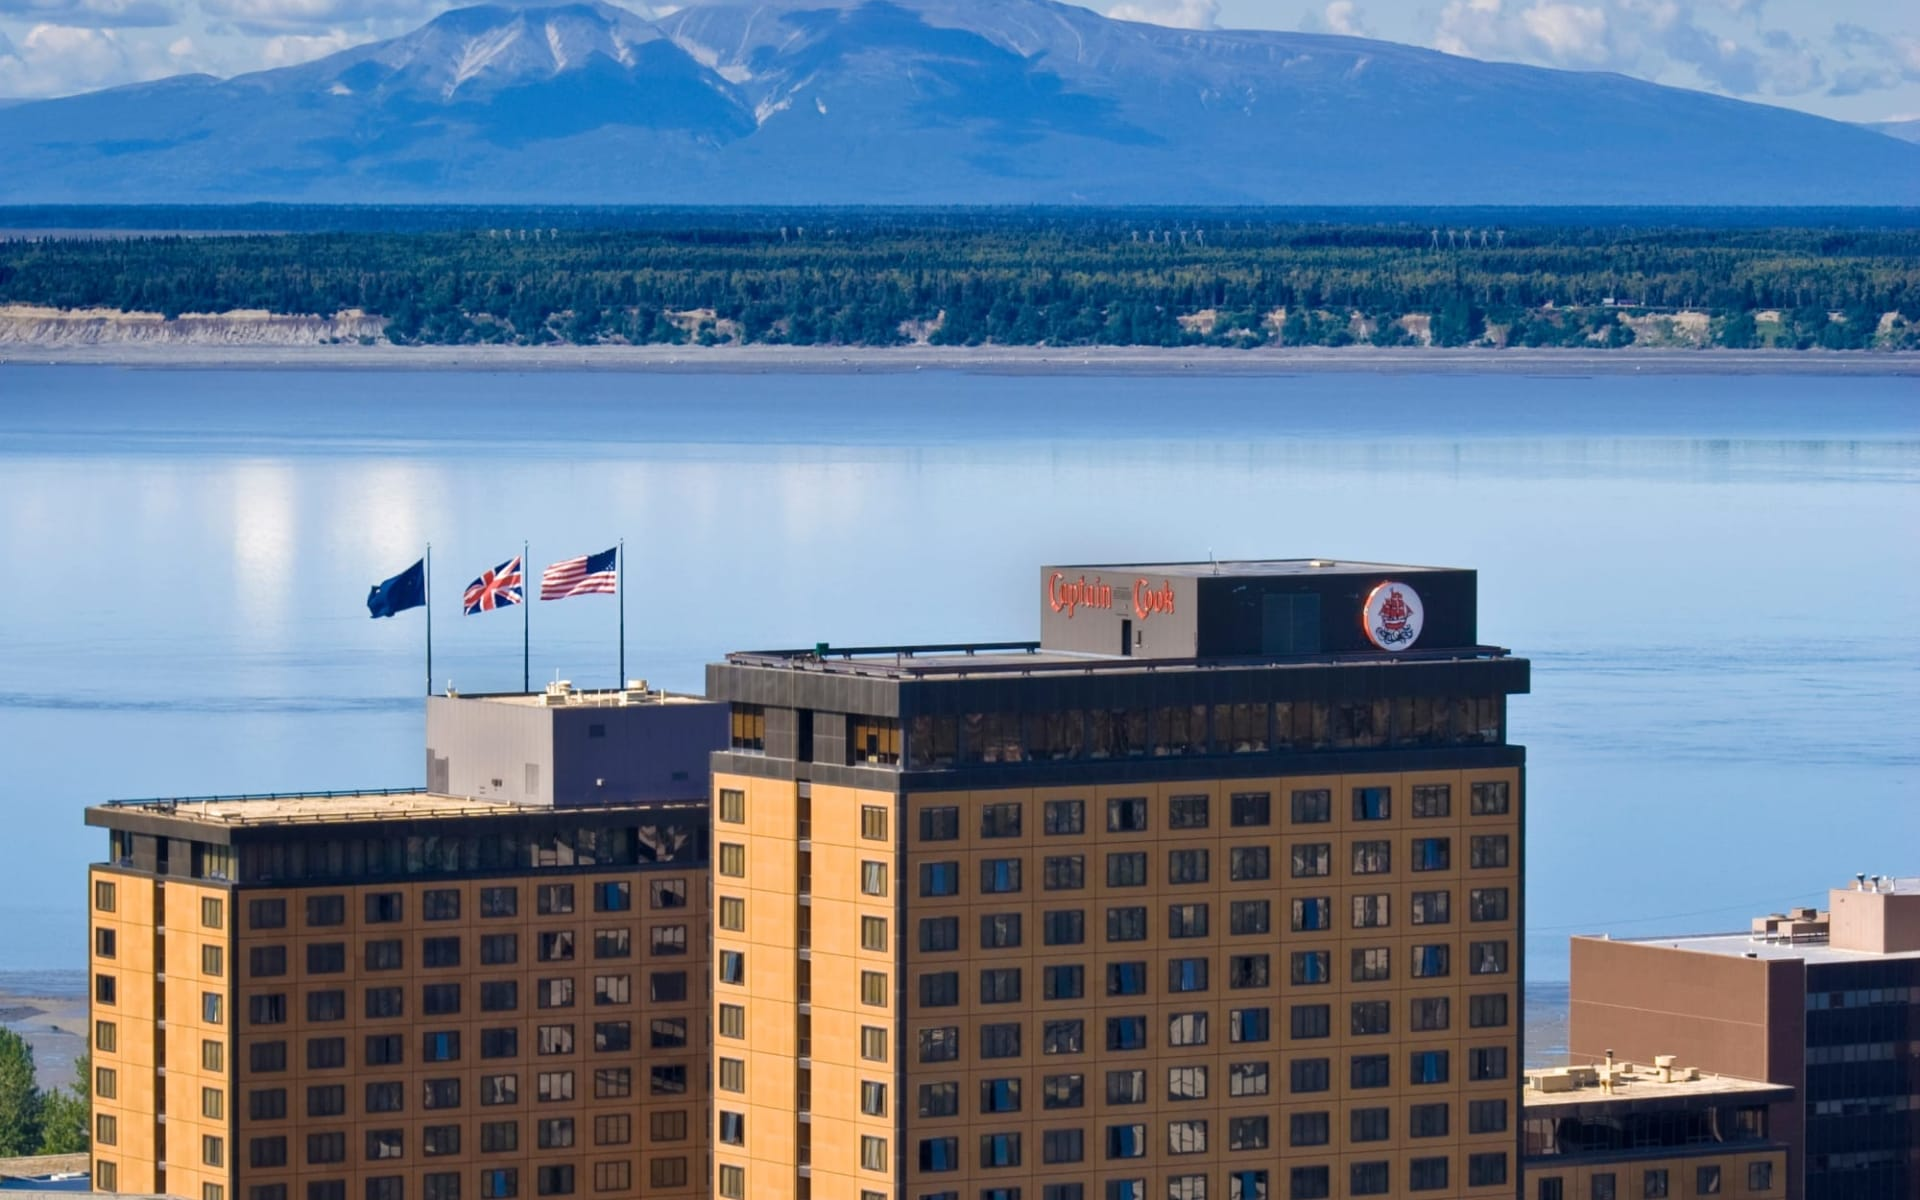 Hotel Captain Cook in Anchorage: captain_cook_hotel_Anchorage_HotelCaptainCook_View